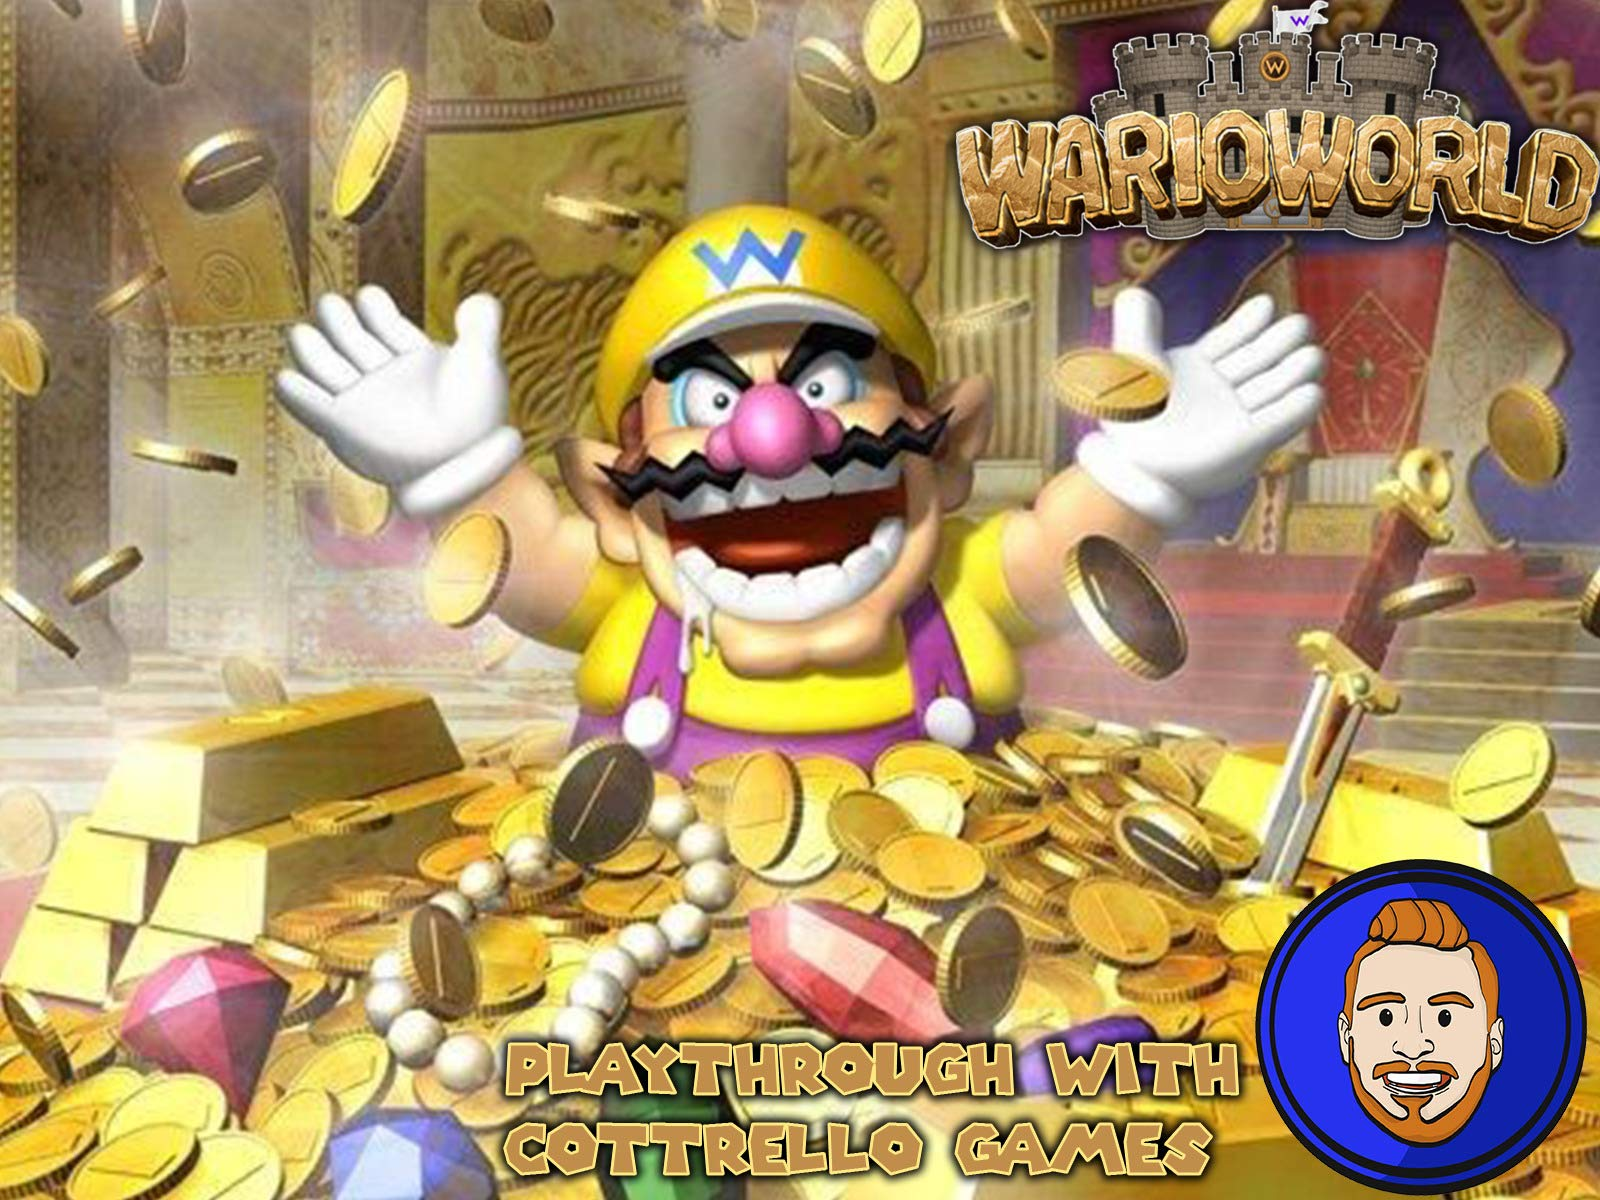 Wario World Playthrough with Cottrello Games